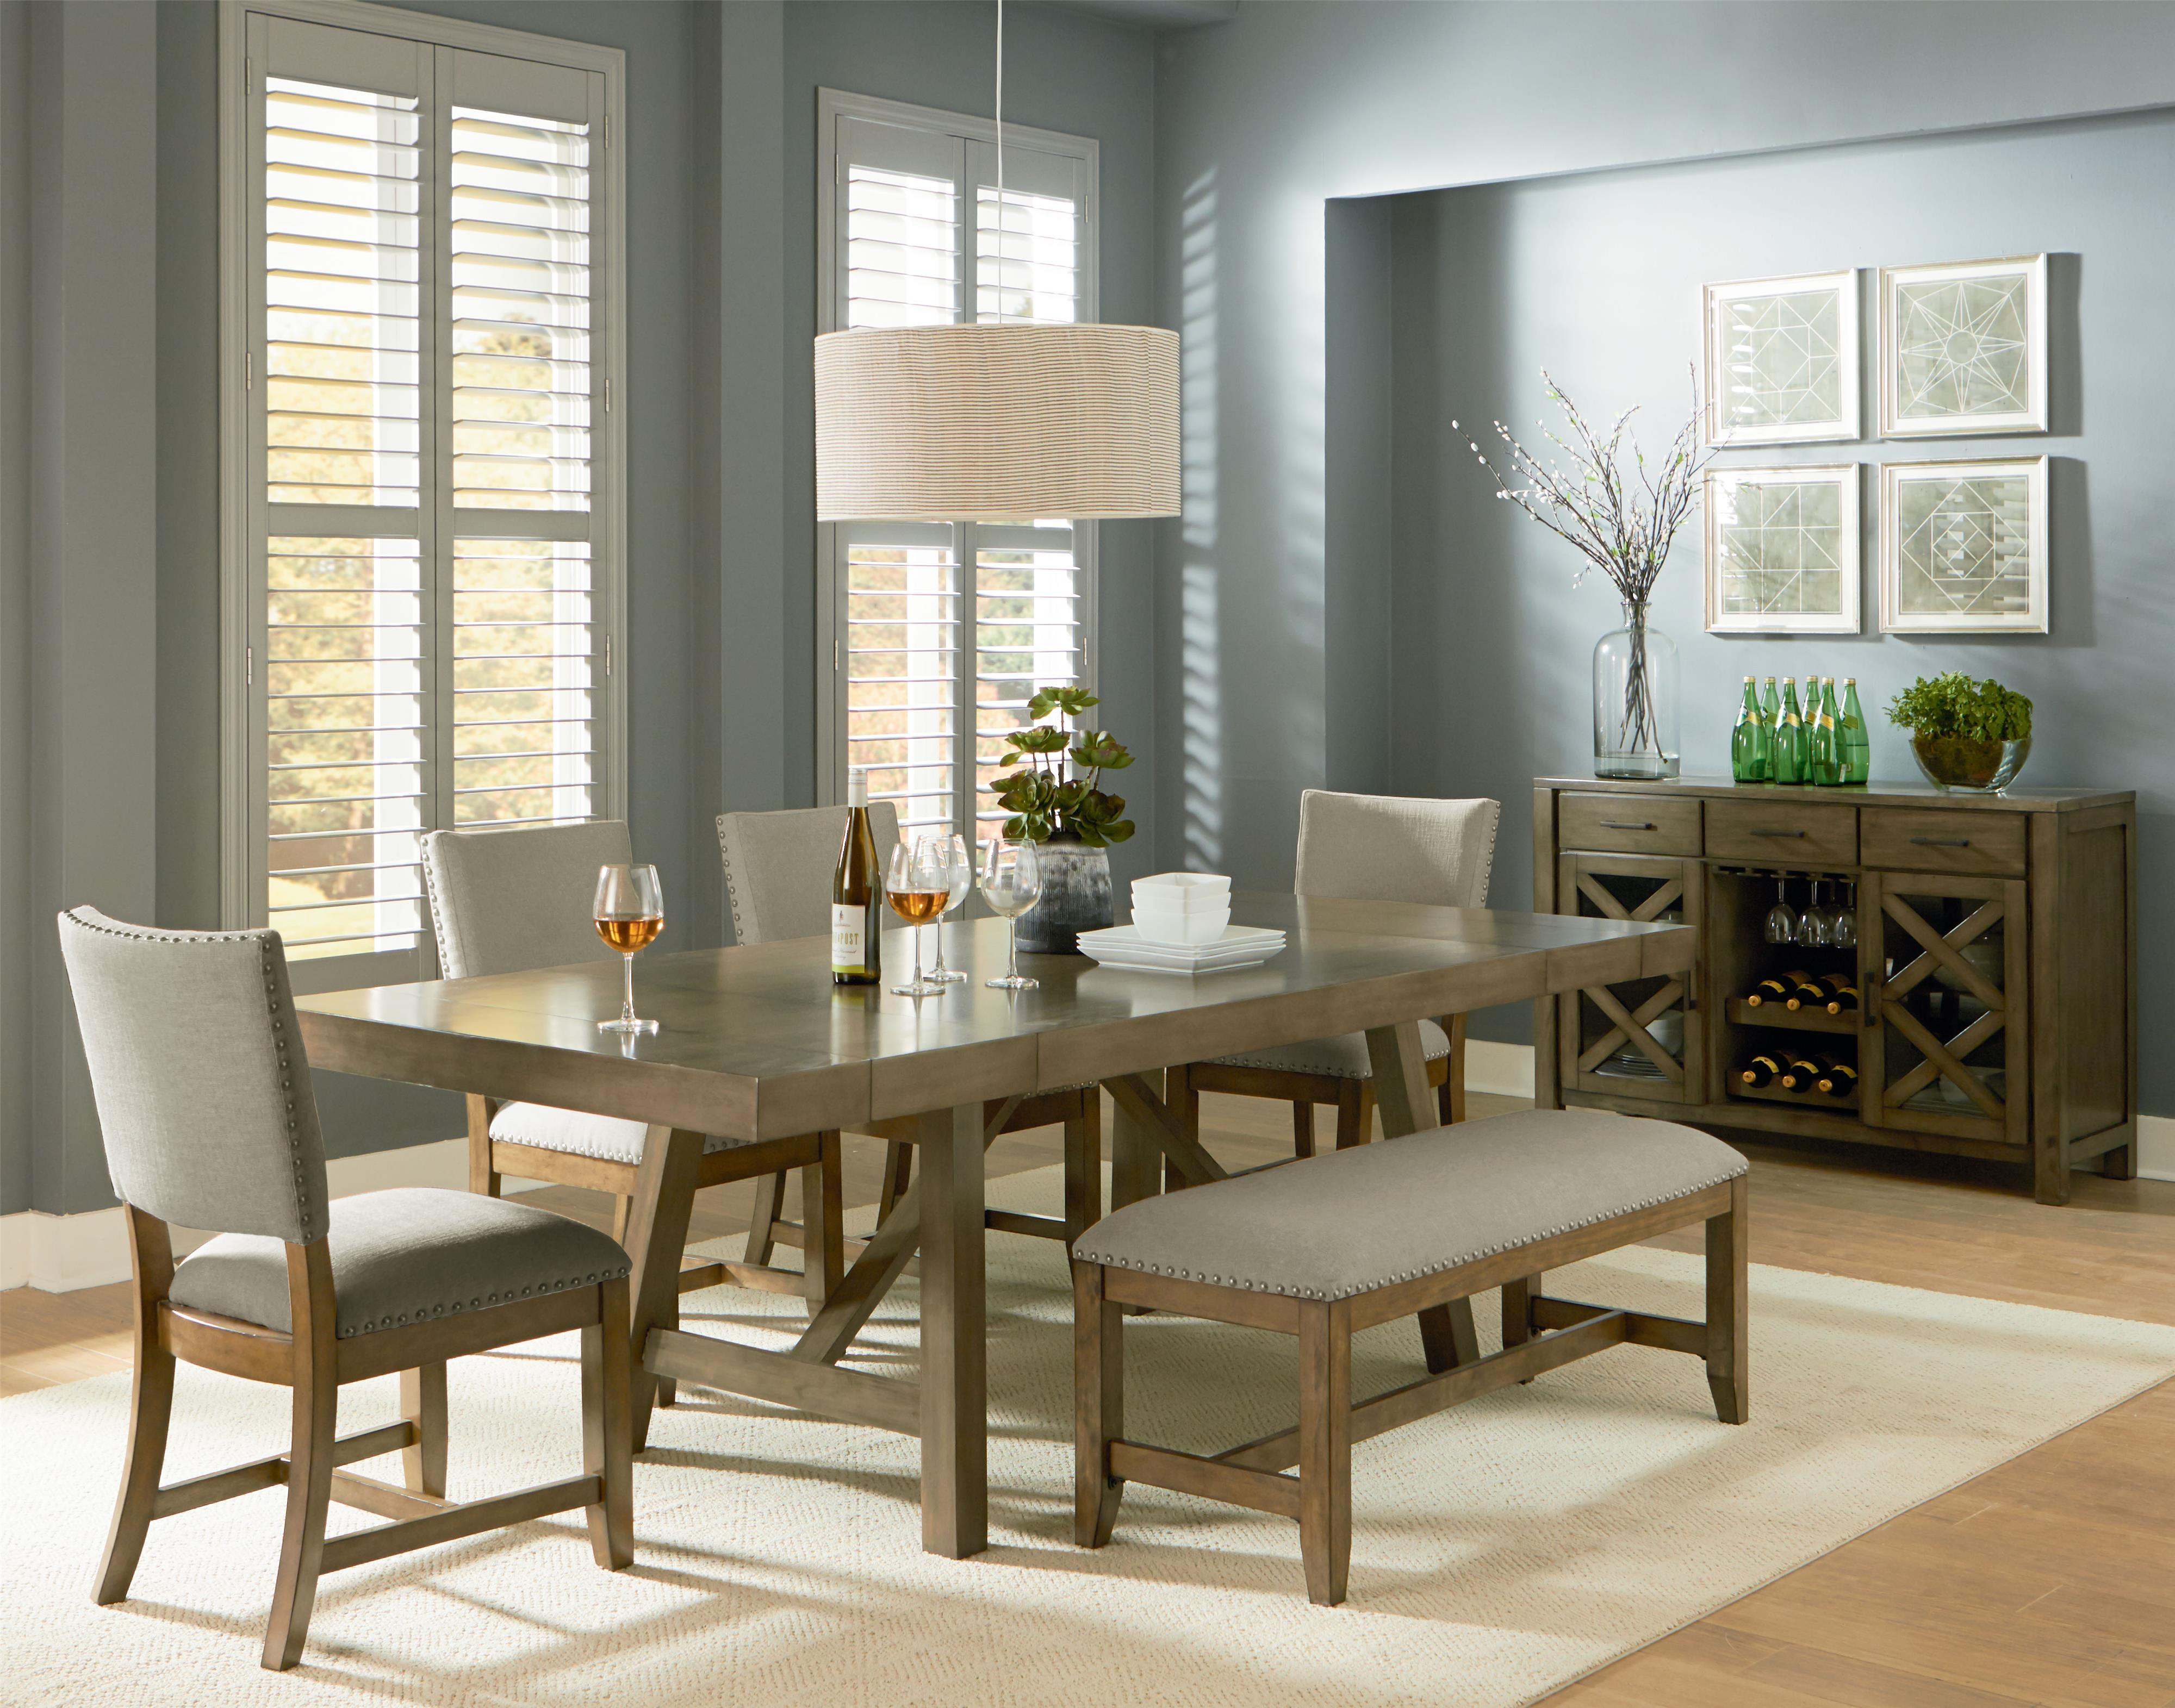 Standard Furniture Omaha Grey Casual Dining Room Group - Item Number: 16680 Dining Room Group 4